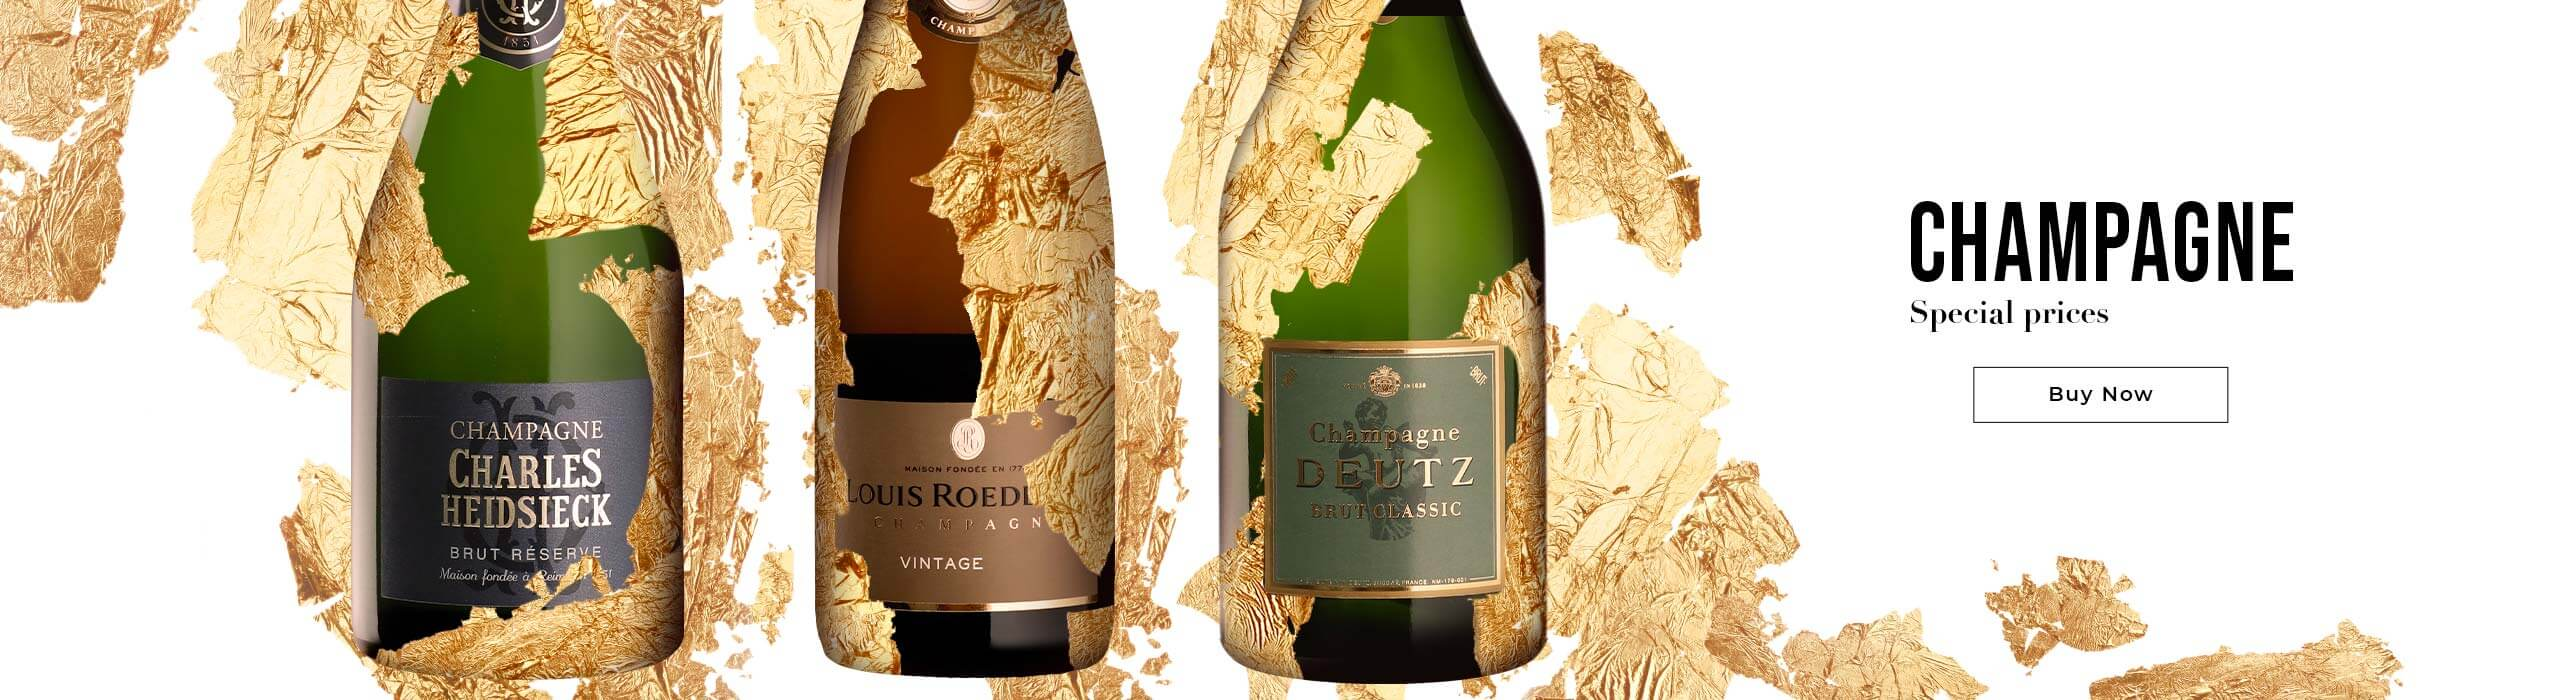 Champagne at special prices